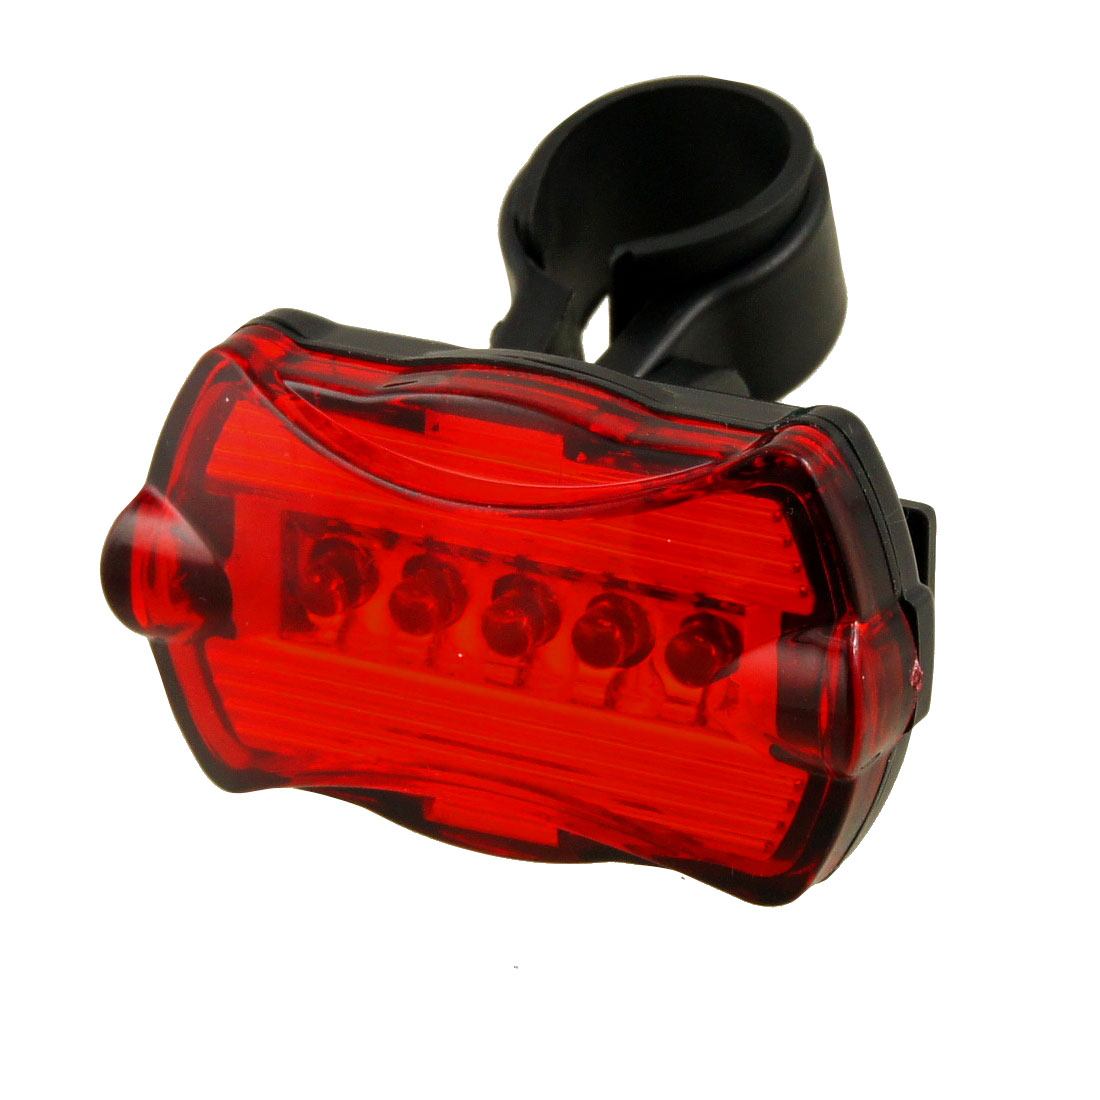 Battery Powered 5 LED Bike Rear Light Tail Lamp w Stand